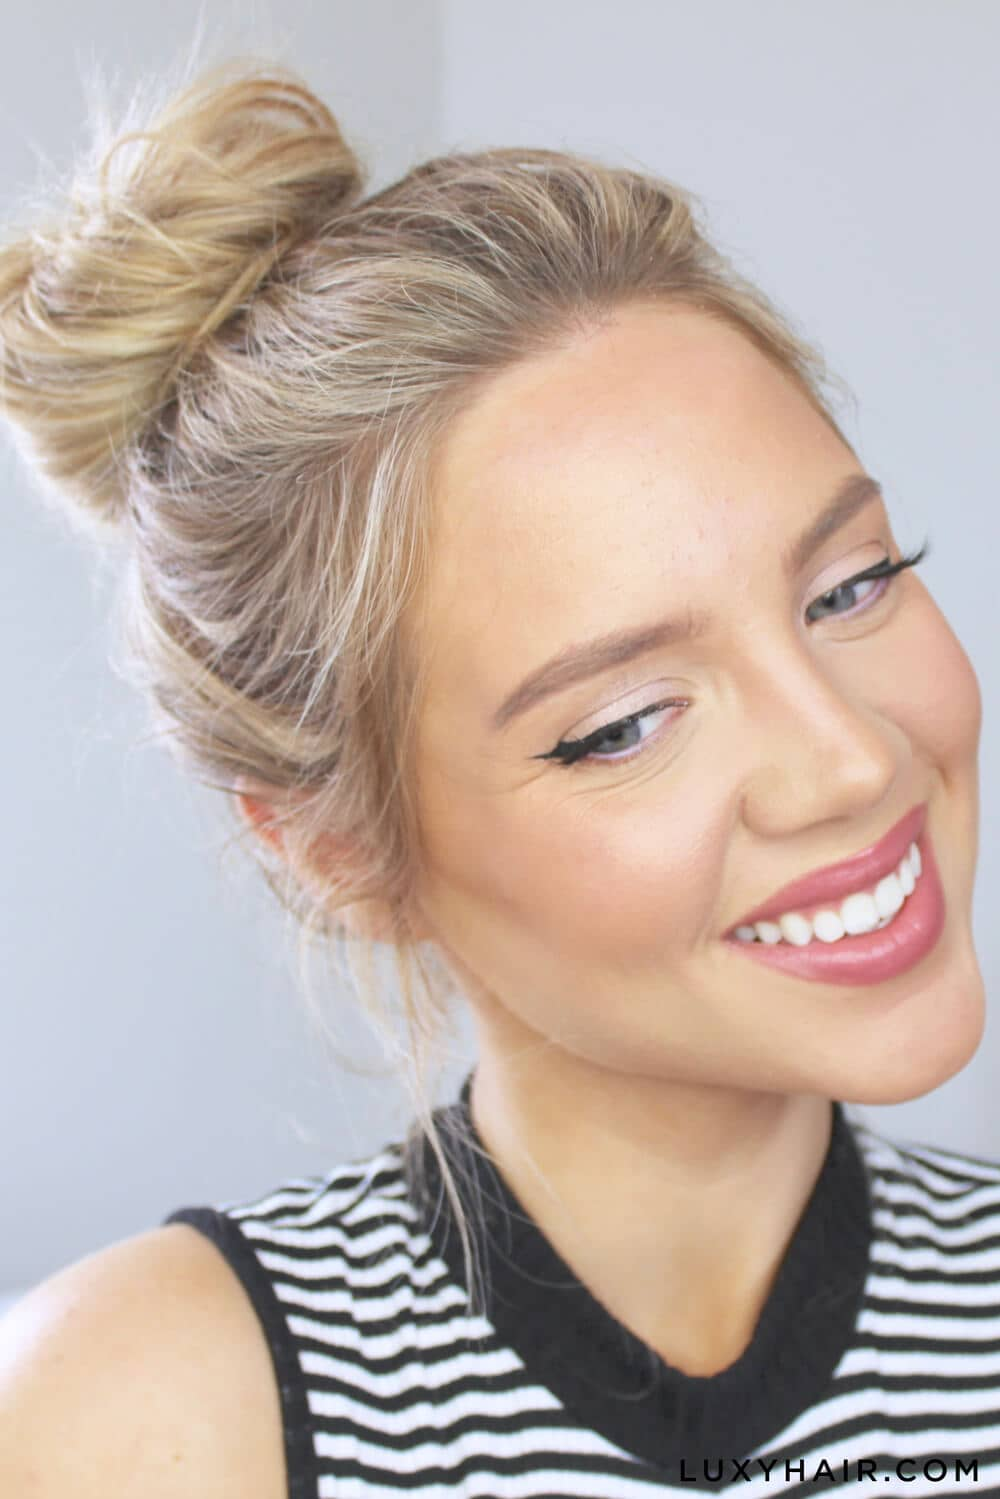 Best Adorable Bun Hairstyles 2019-Inspirations That 21